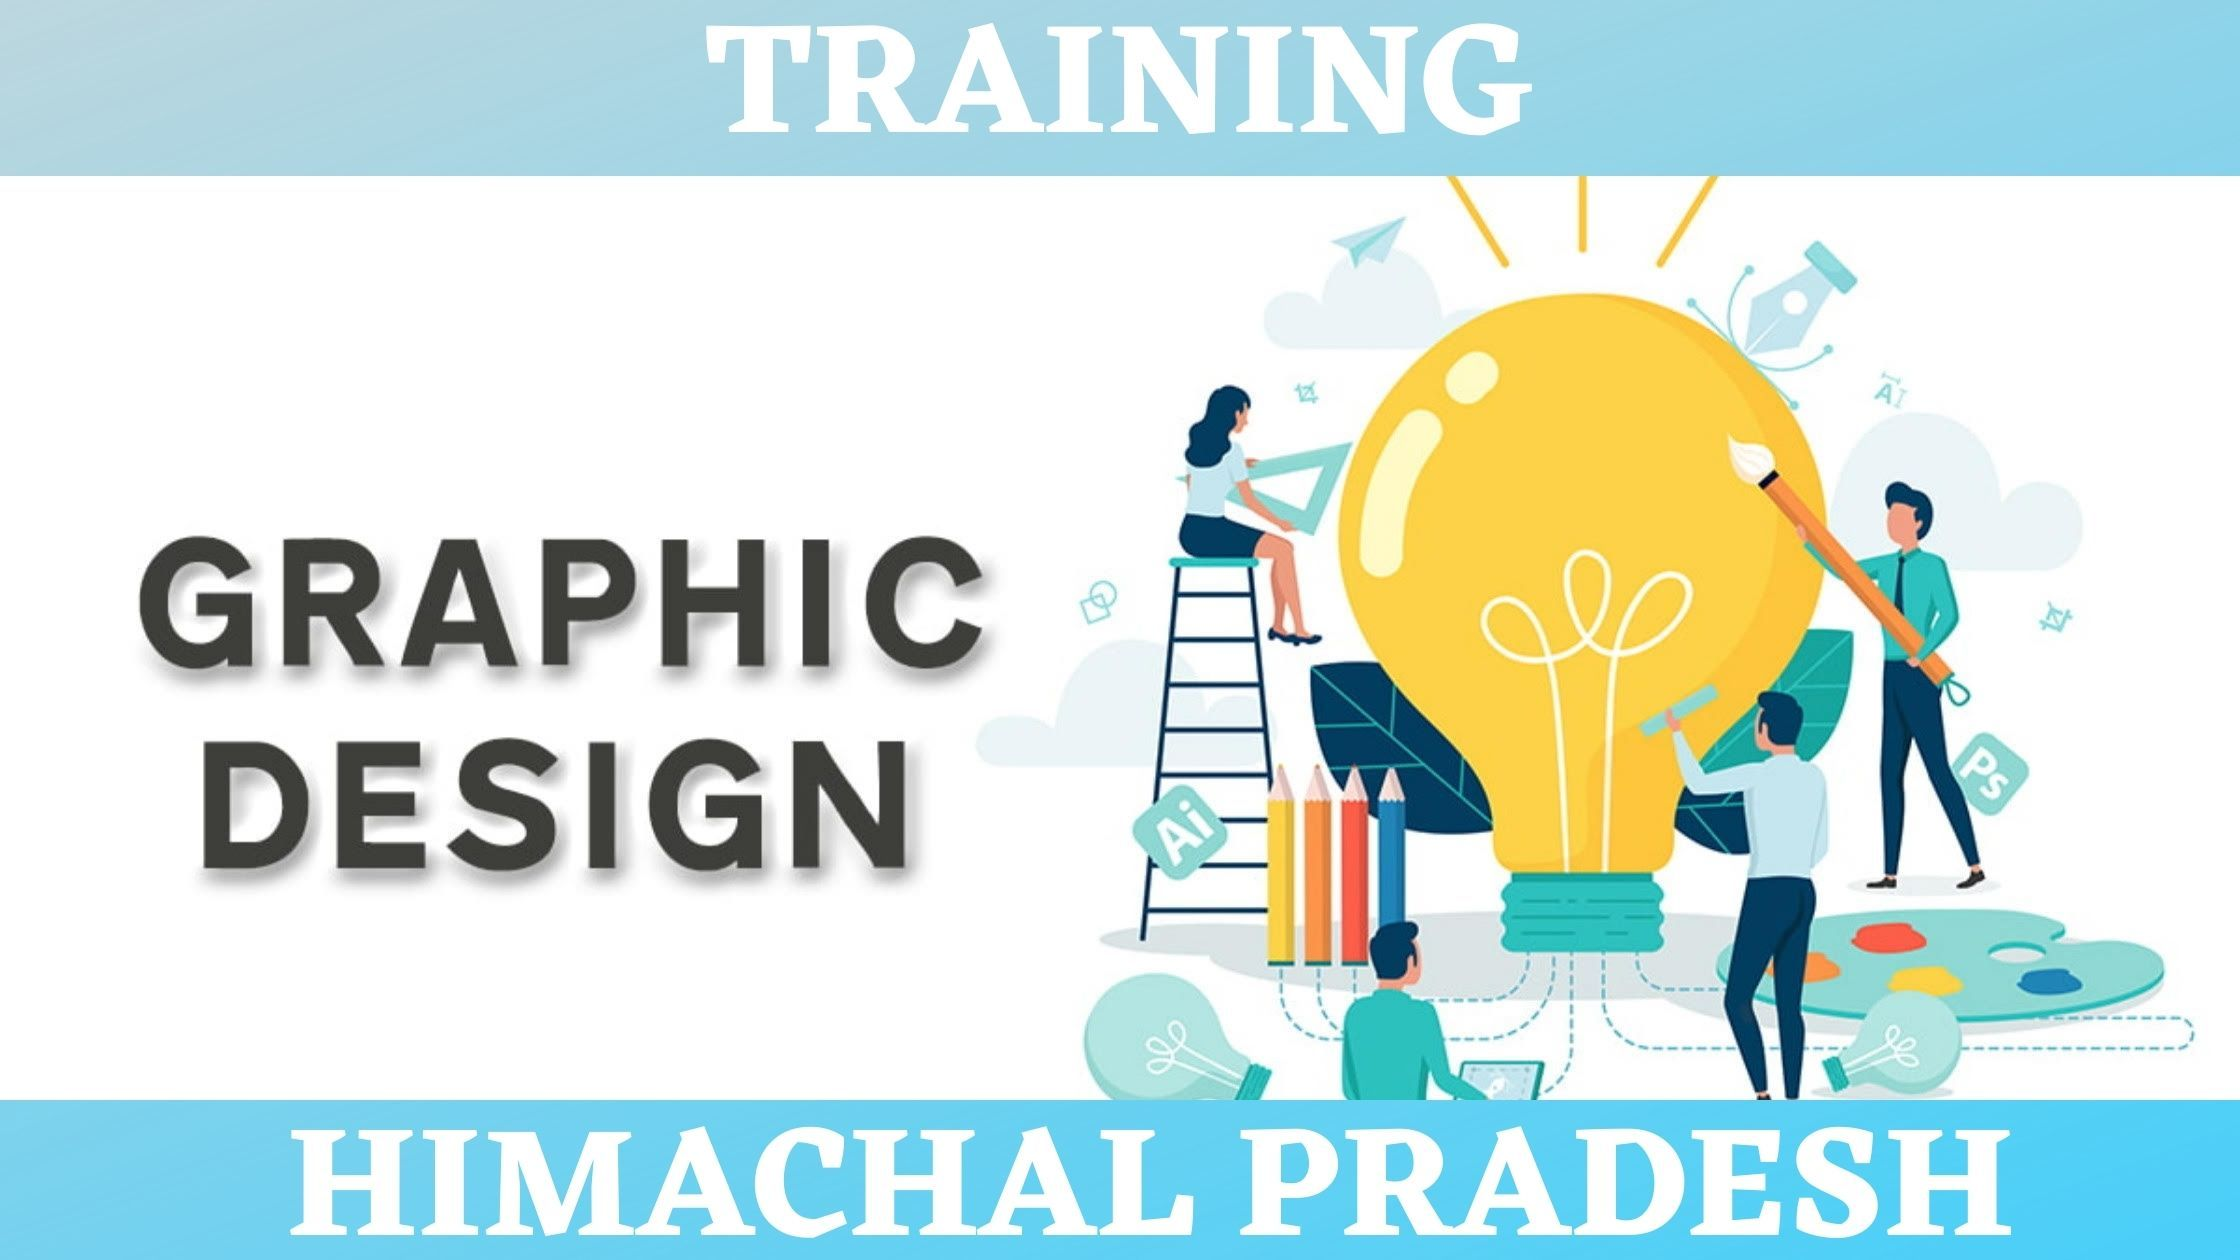 graphic_design_training_in_himachal_pradesh -background.jpeg